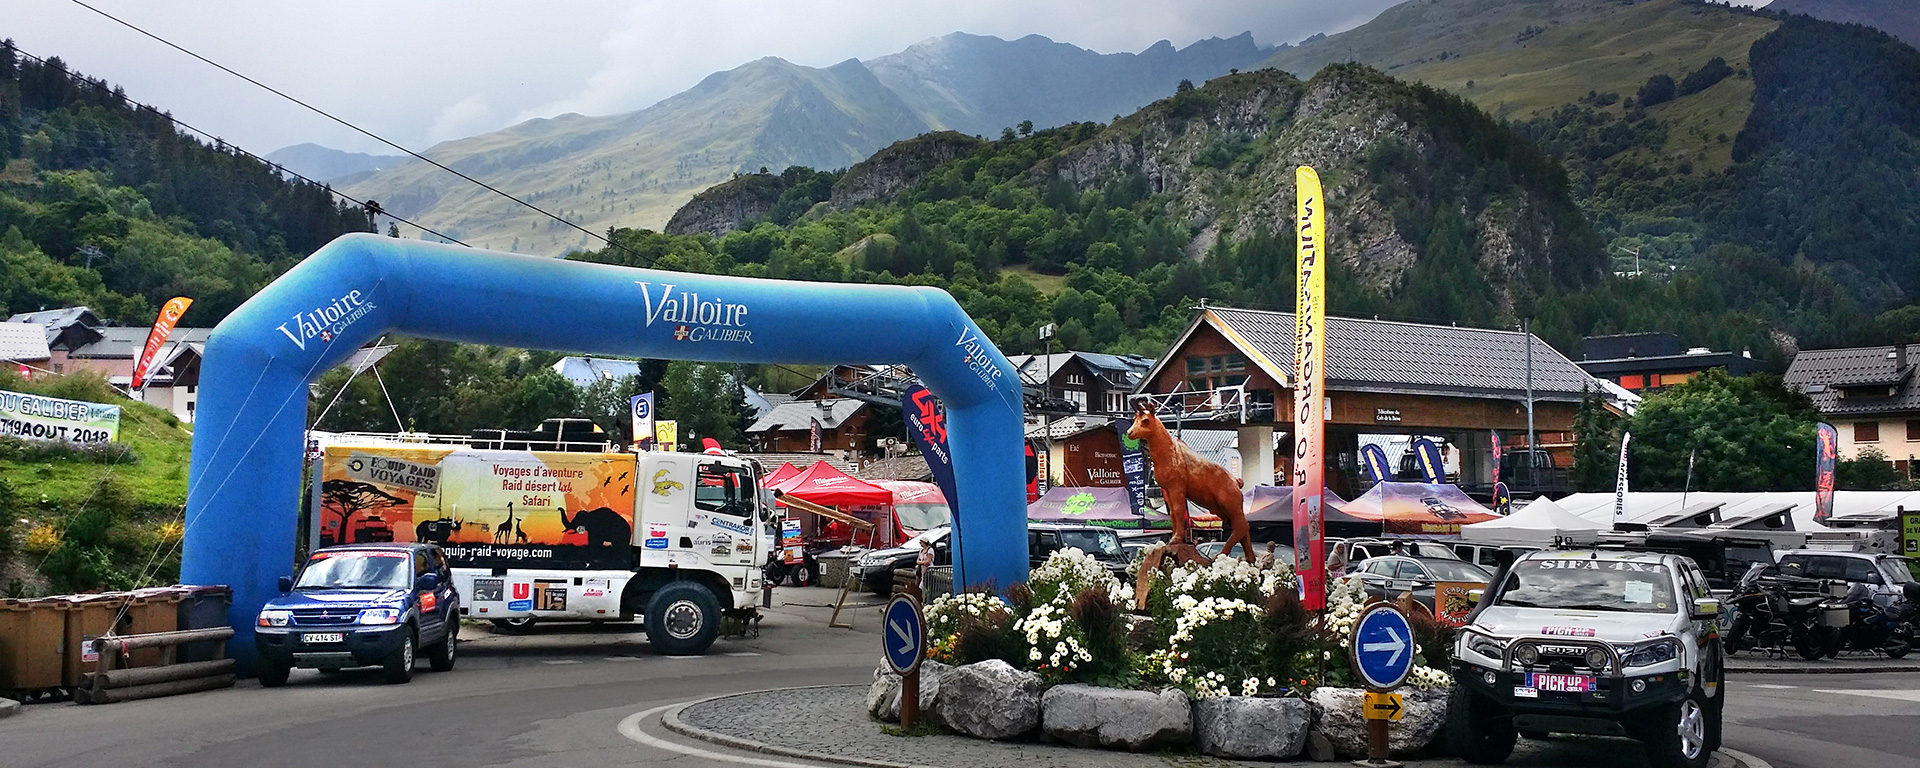 Valloire Off-Road fair